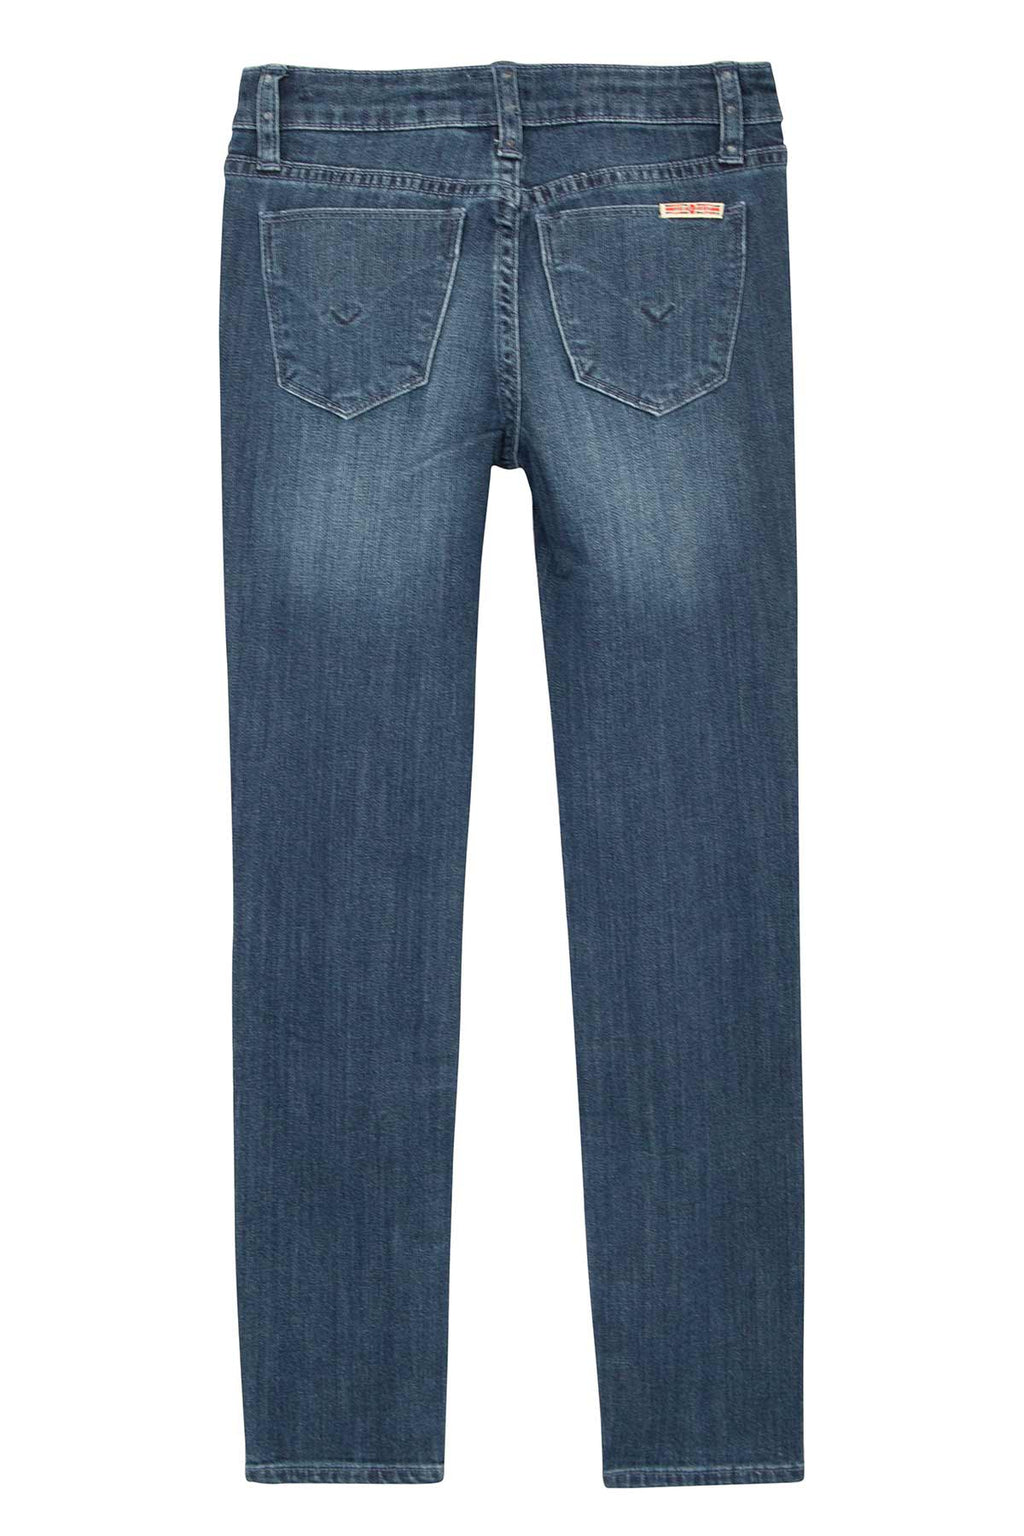 Big Girls Stud Skinny Jean, Sizes 7-16 - hudsonjeans